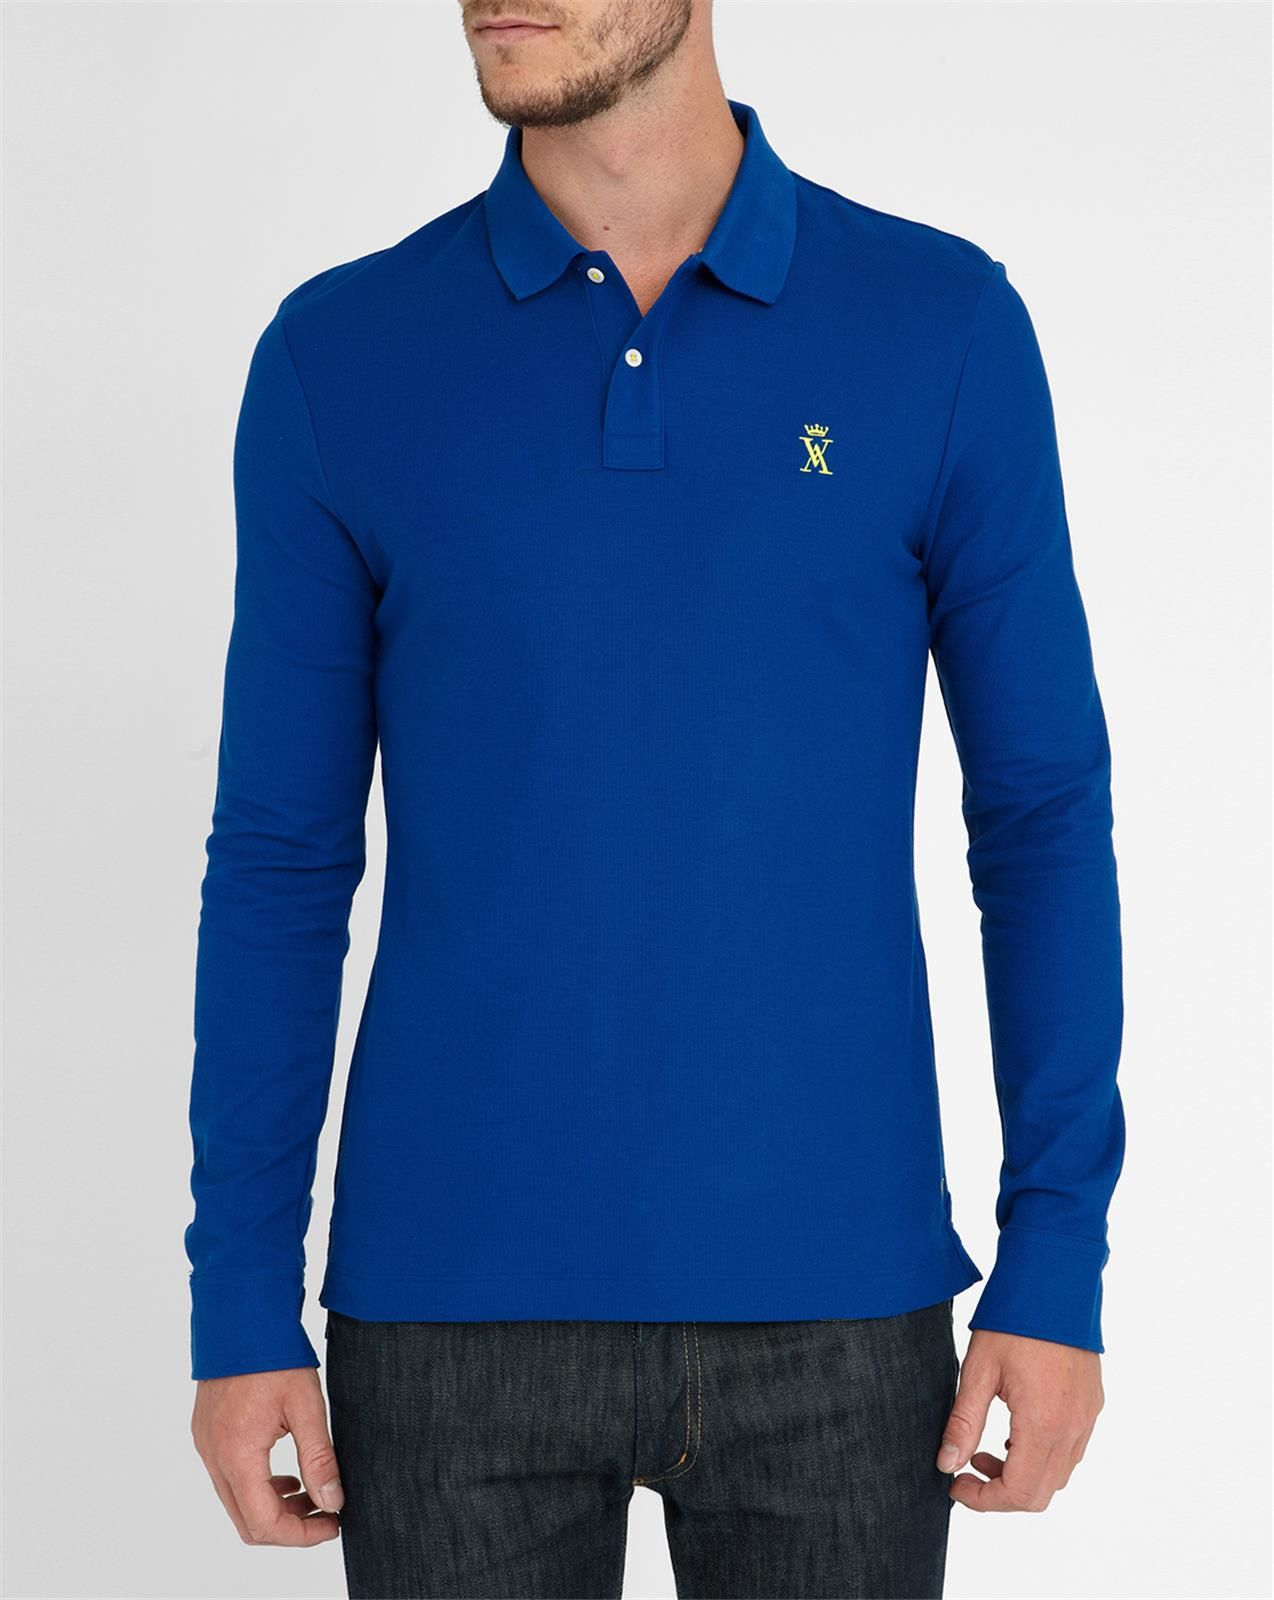 Vicomte A Royal Blue Ls Polo Shirt With Striped Collar